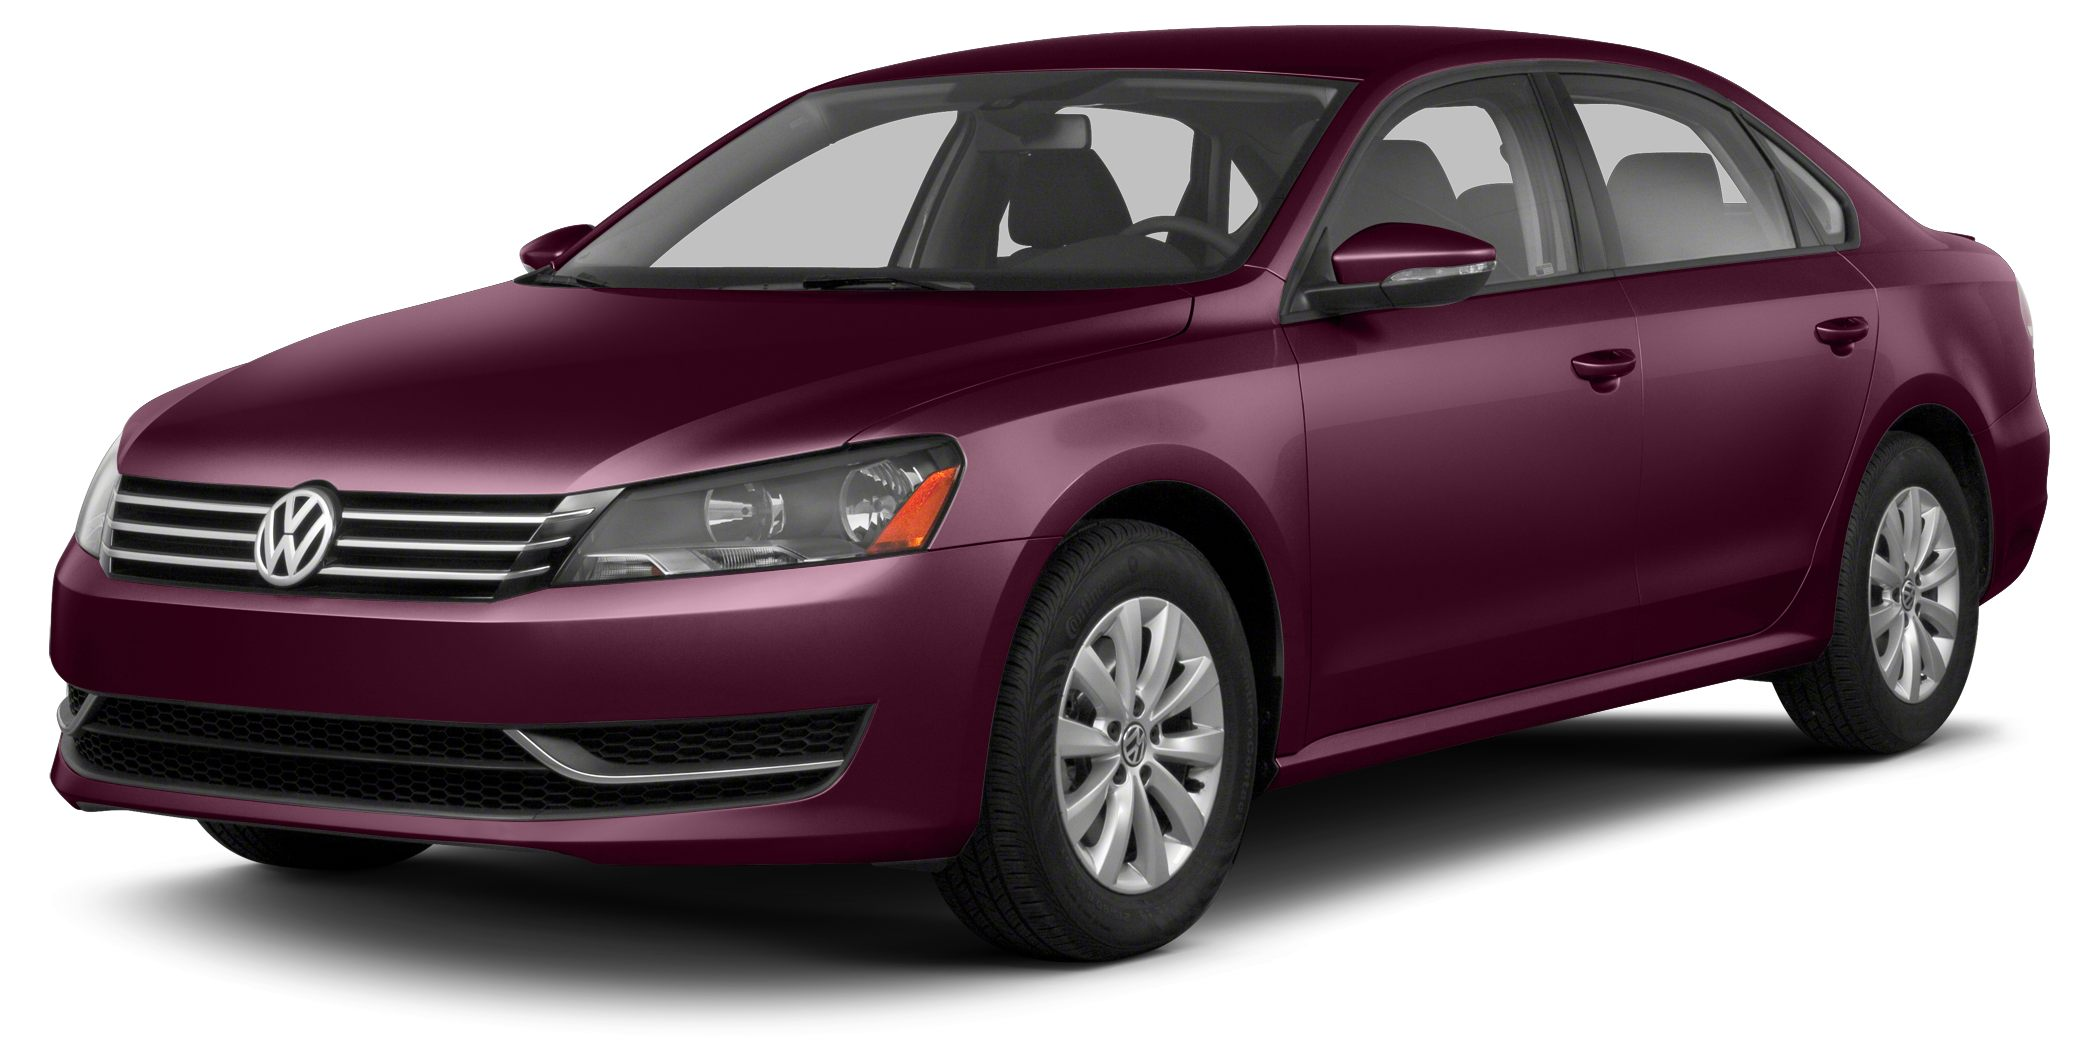 2013 Volkswagen Passat 20 TDI SEL Premium One Owner Clean Carfax REMAINDER OF FACTORY WARRANTY